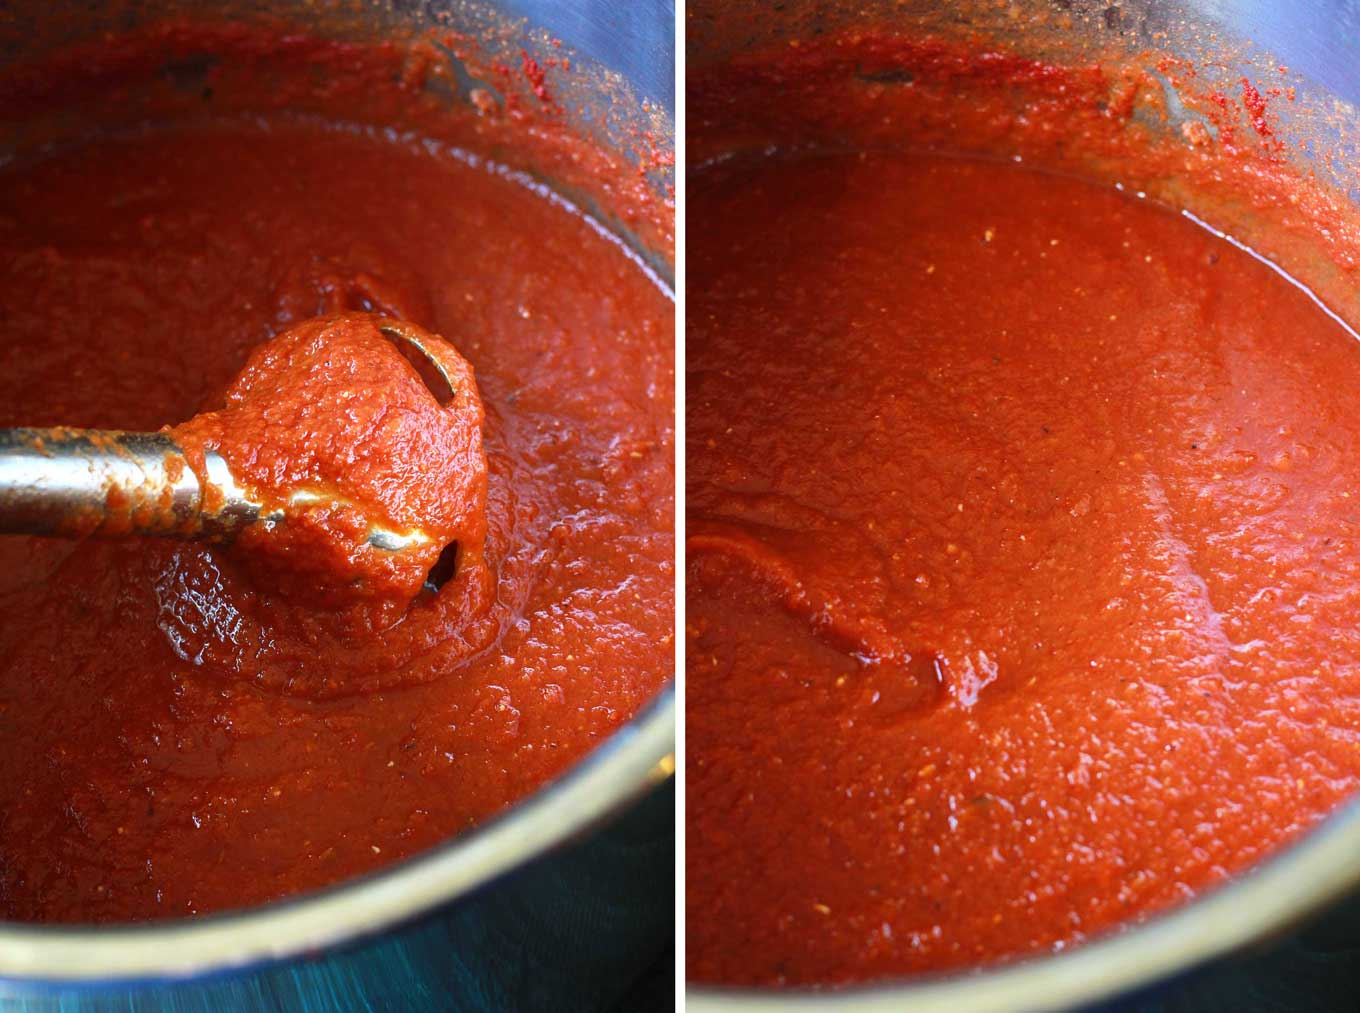 Make this protein-packed marinara sauce in your pressure cooker in 30 minutes! Vegan, gluten-free, and so healthy with veggies and lentils hidden in the sauce! | https://passtheplants.com